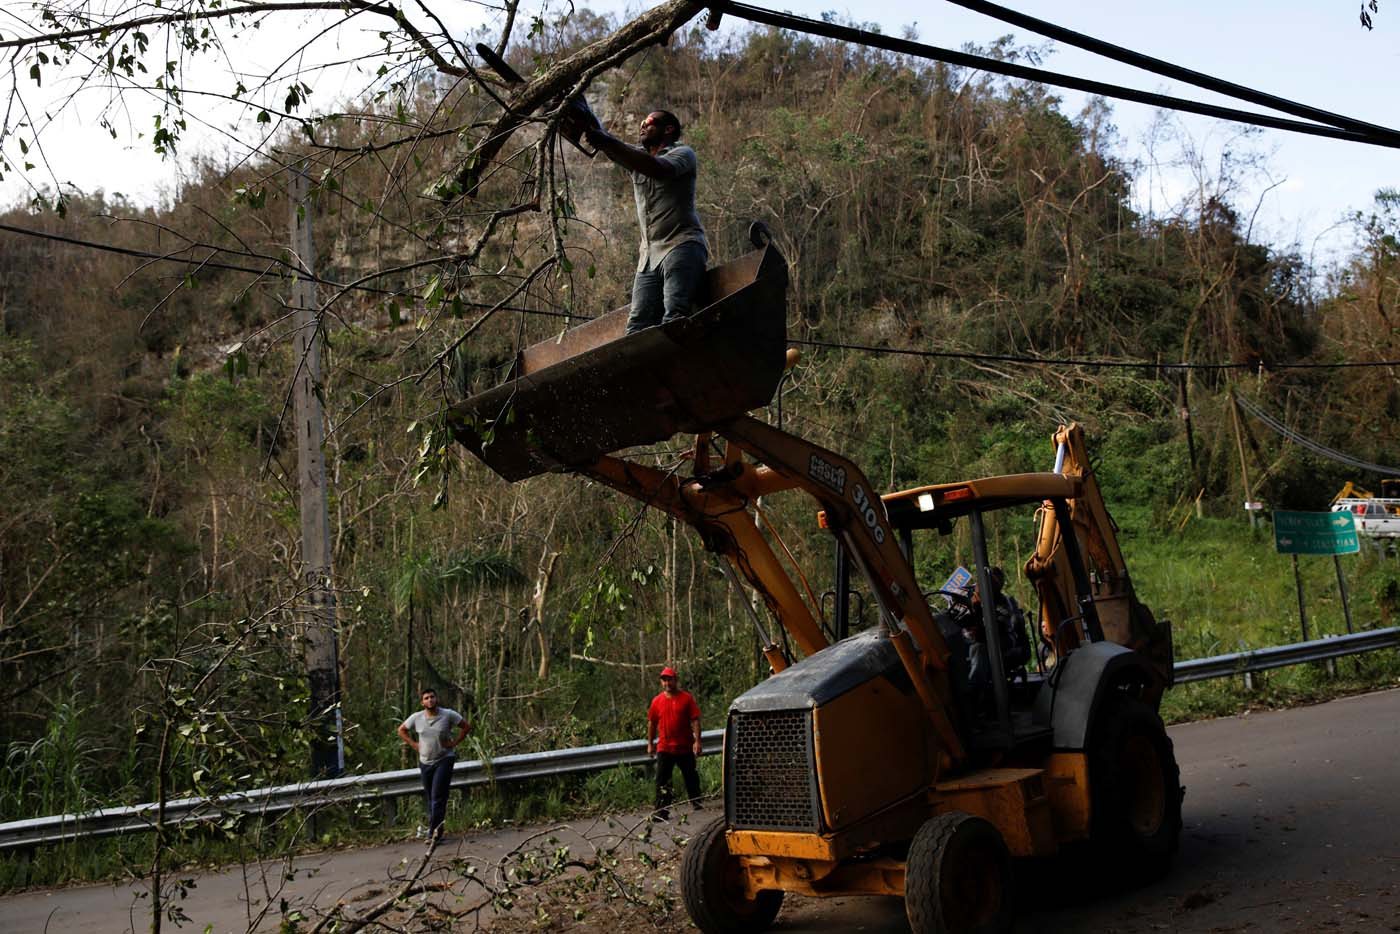 A worker standing on a backhoe loader uses a chainsaw to remove fallen trees from the street after the area was hit by Hurricane Maria in Camuy, Puerto Rico September 23, 2017. REUTERS/Carlos Garcia Rawlins